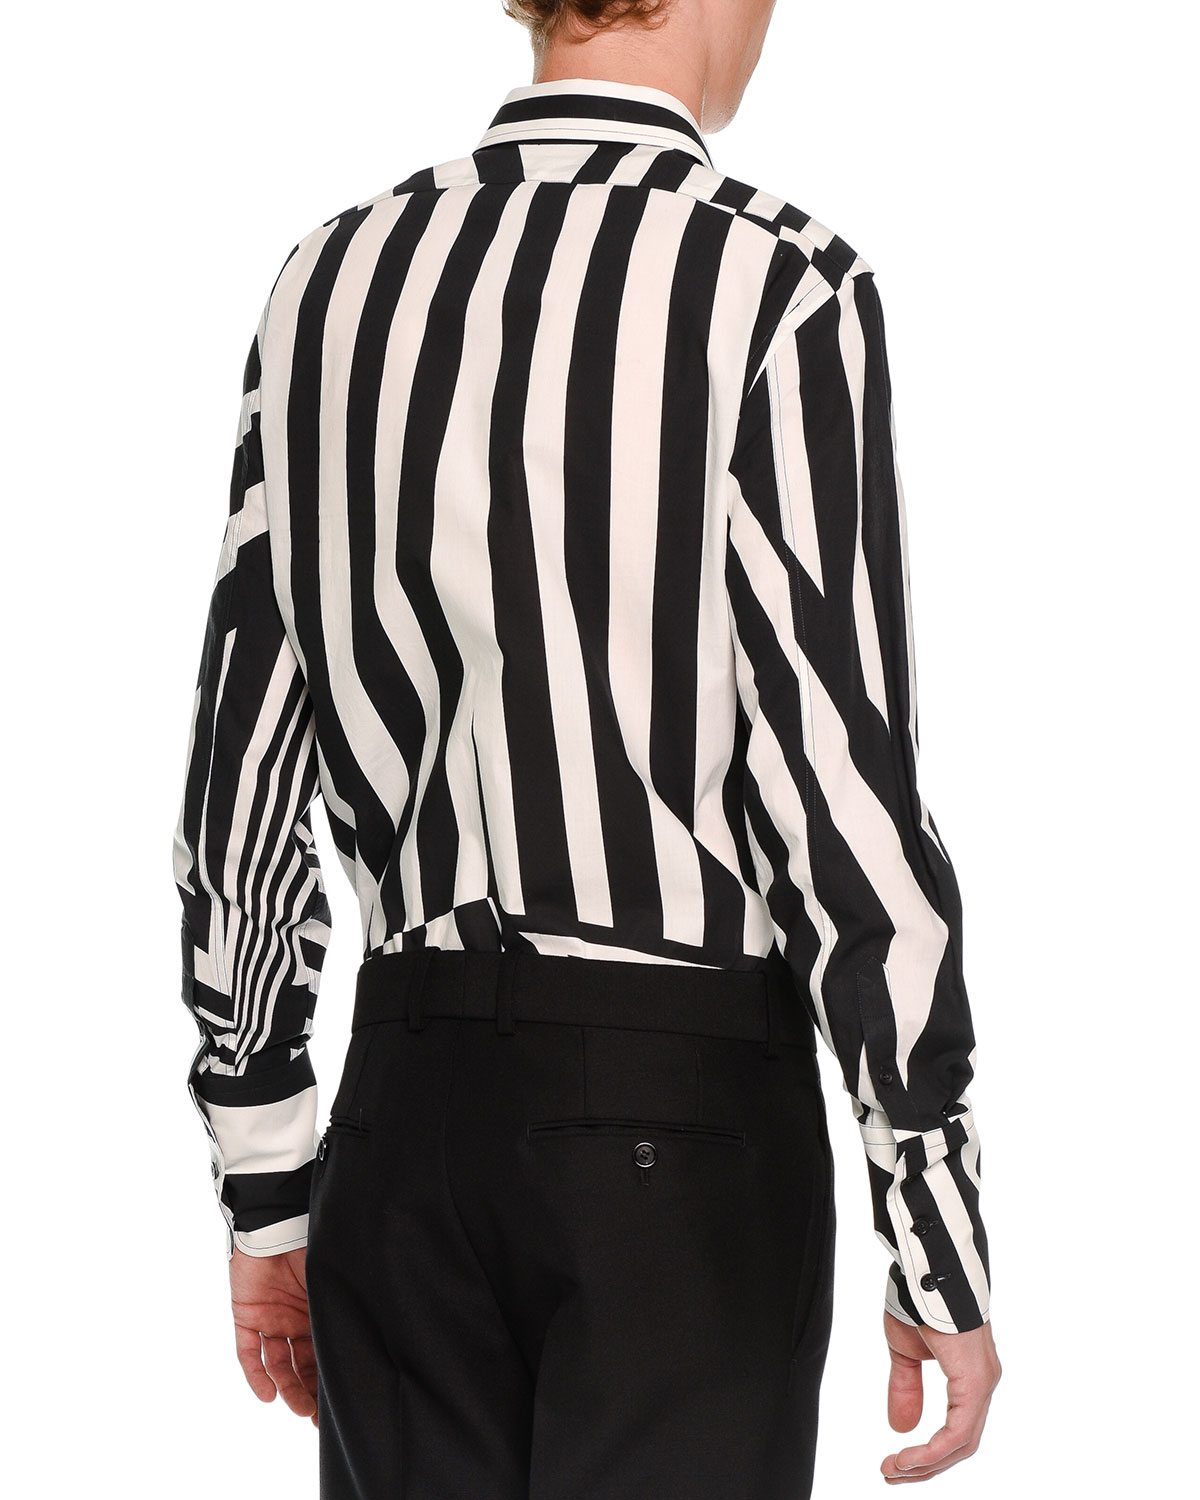 Lyst - Alexander mcqueen Stripe-patched Button-down Shirt in Black ...